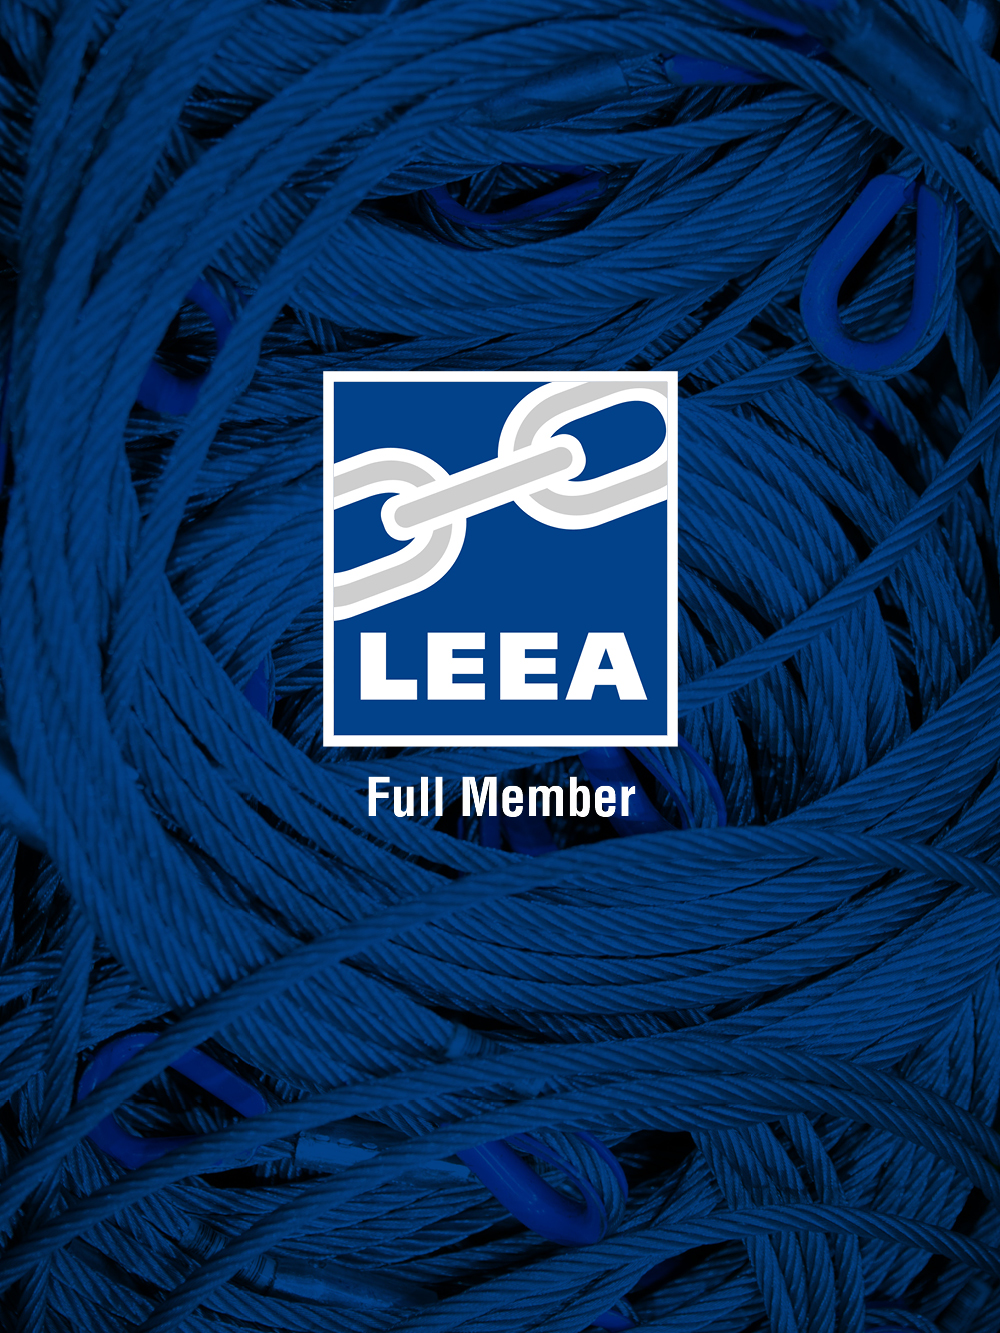 Broadweigh achieves full LEEA membership